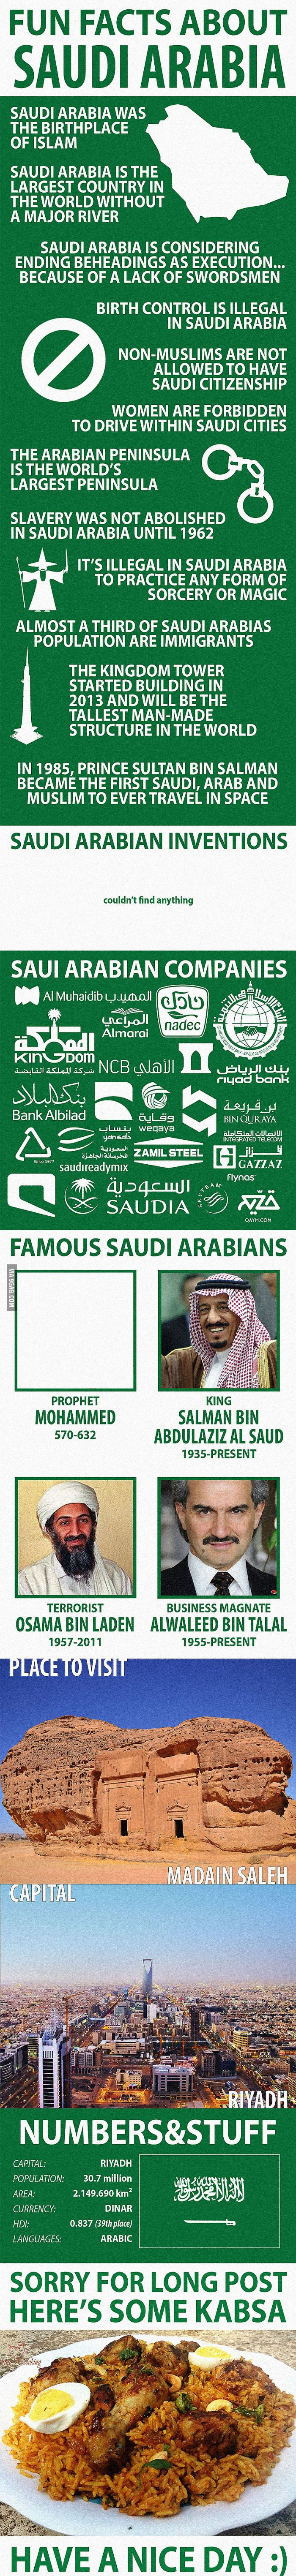 Fun Facts about Saudi Arabia